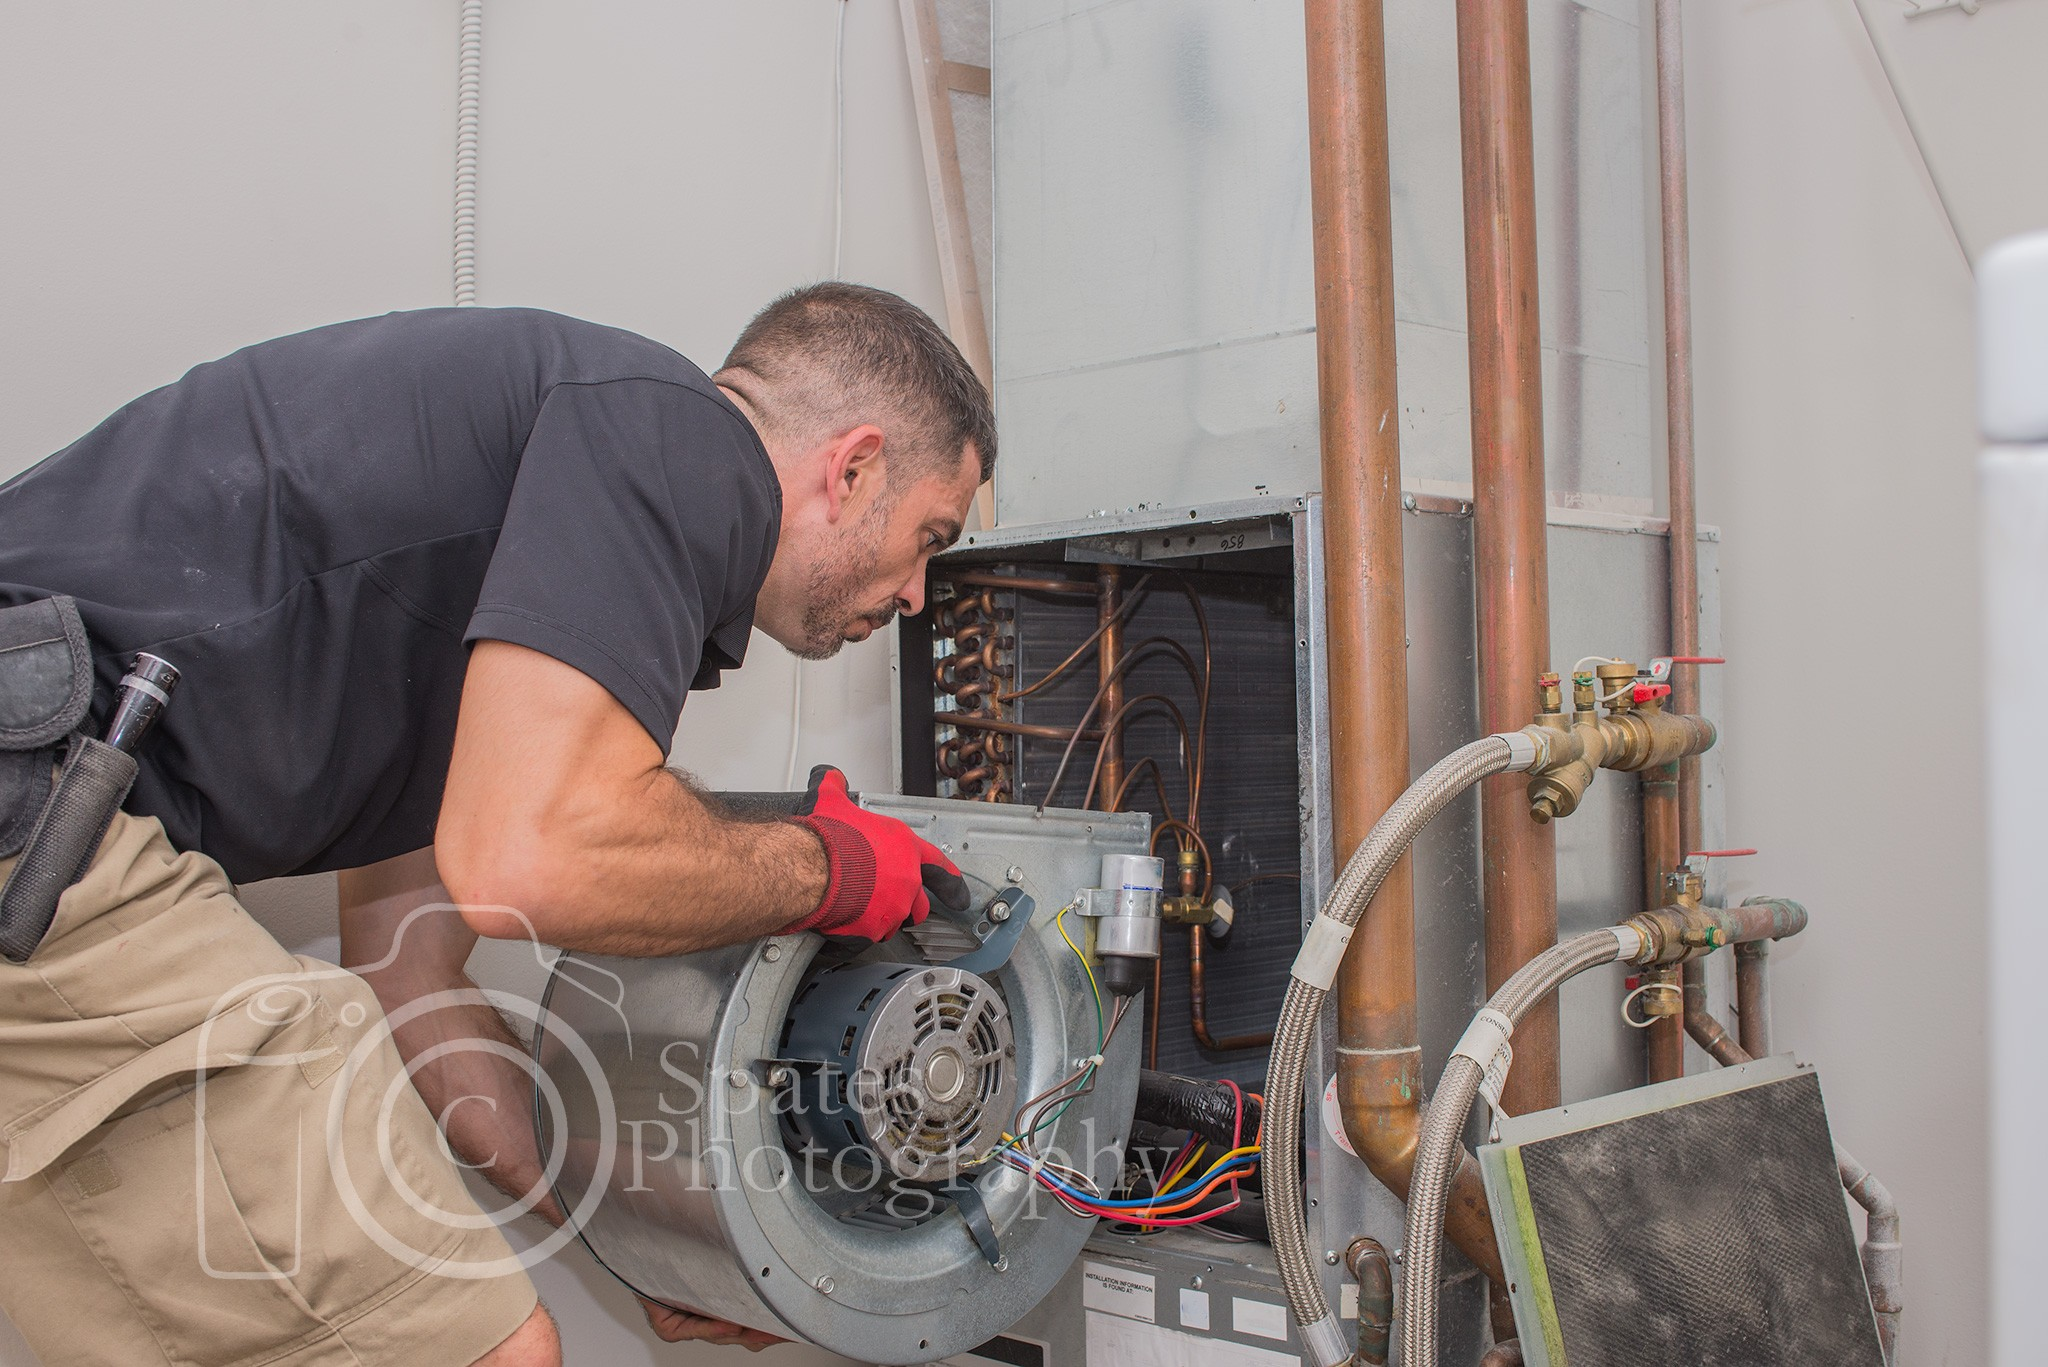 Hvac training guide to a successful career path hvac technician installing blower motor in a commercial heat pump xflitez Choice Image